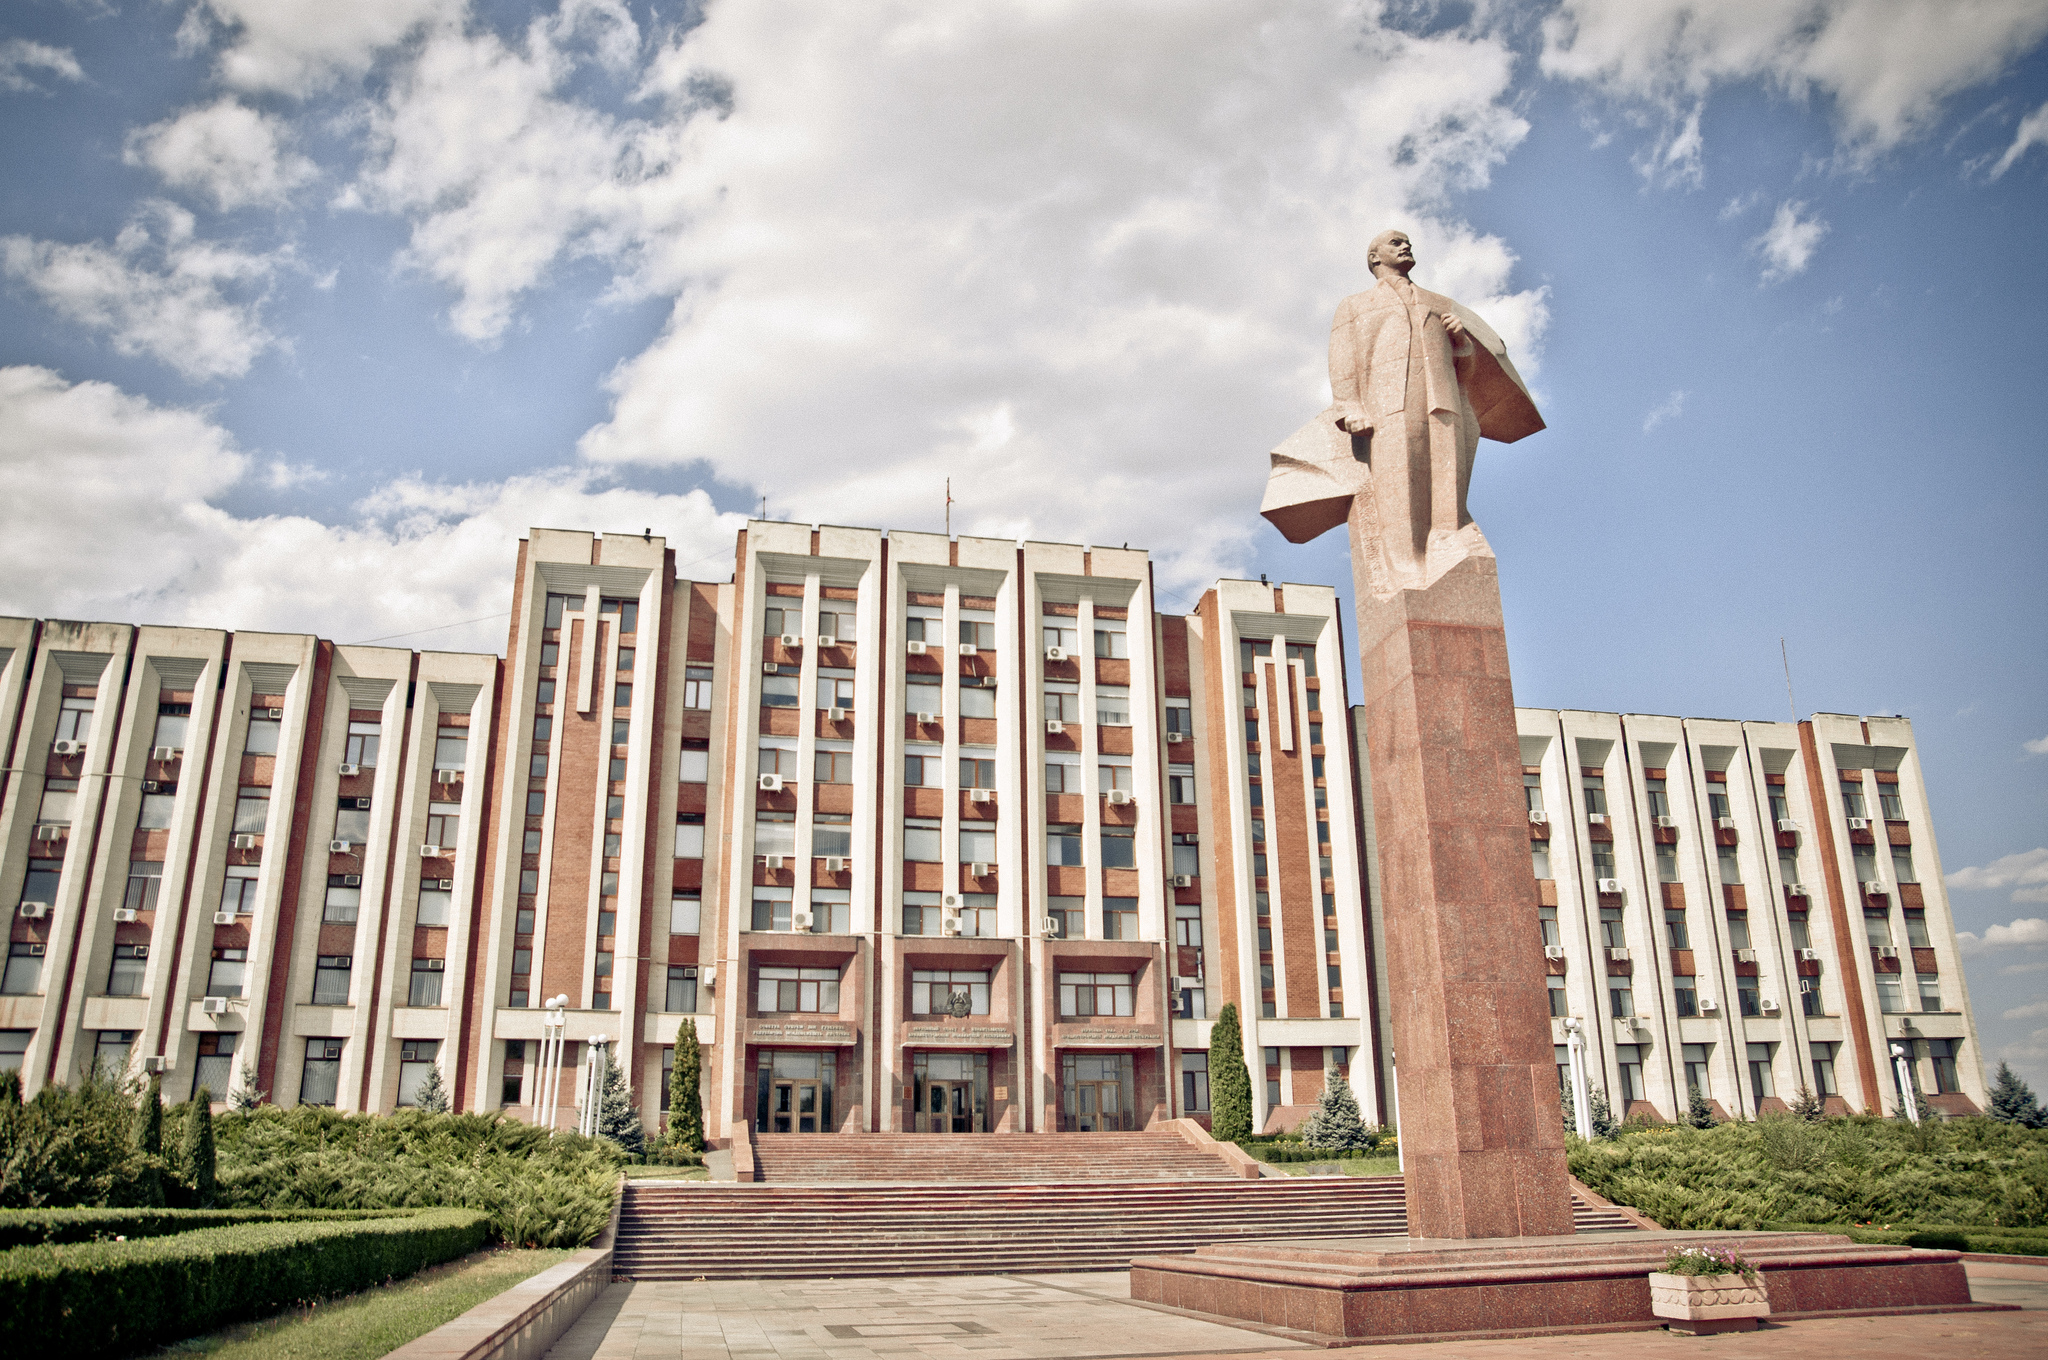 Tiraspol is the largest city in Transnistria